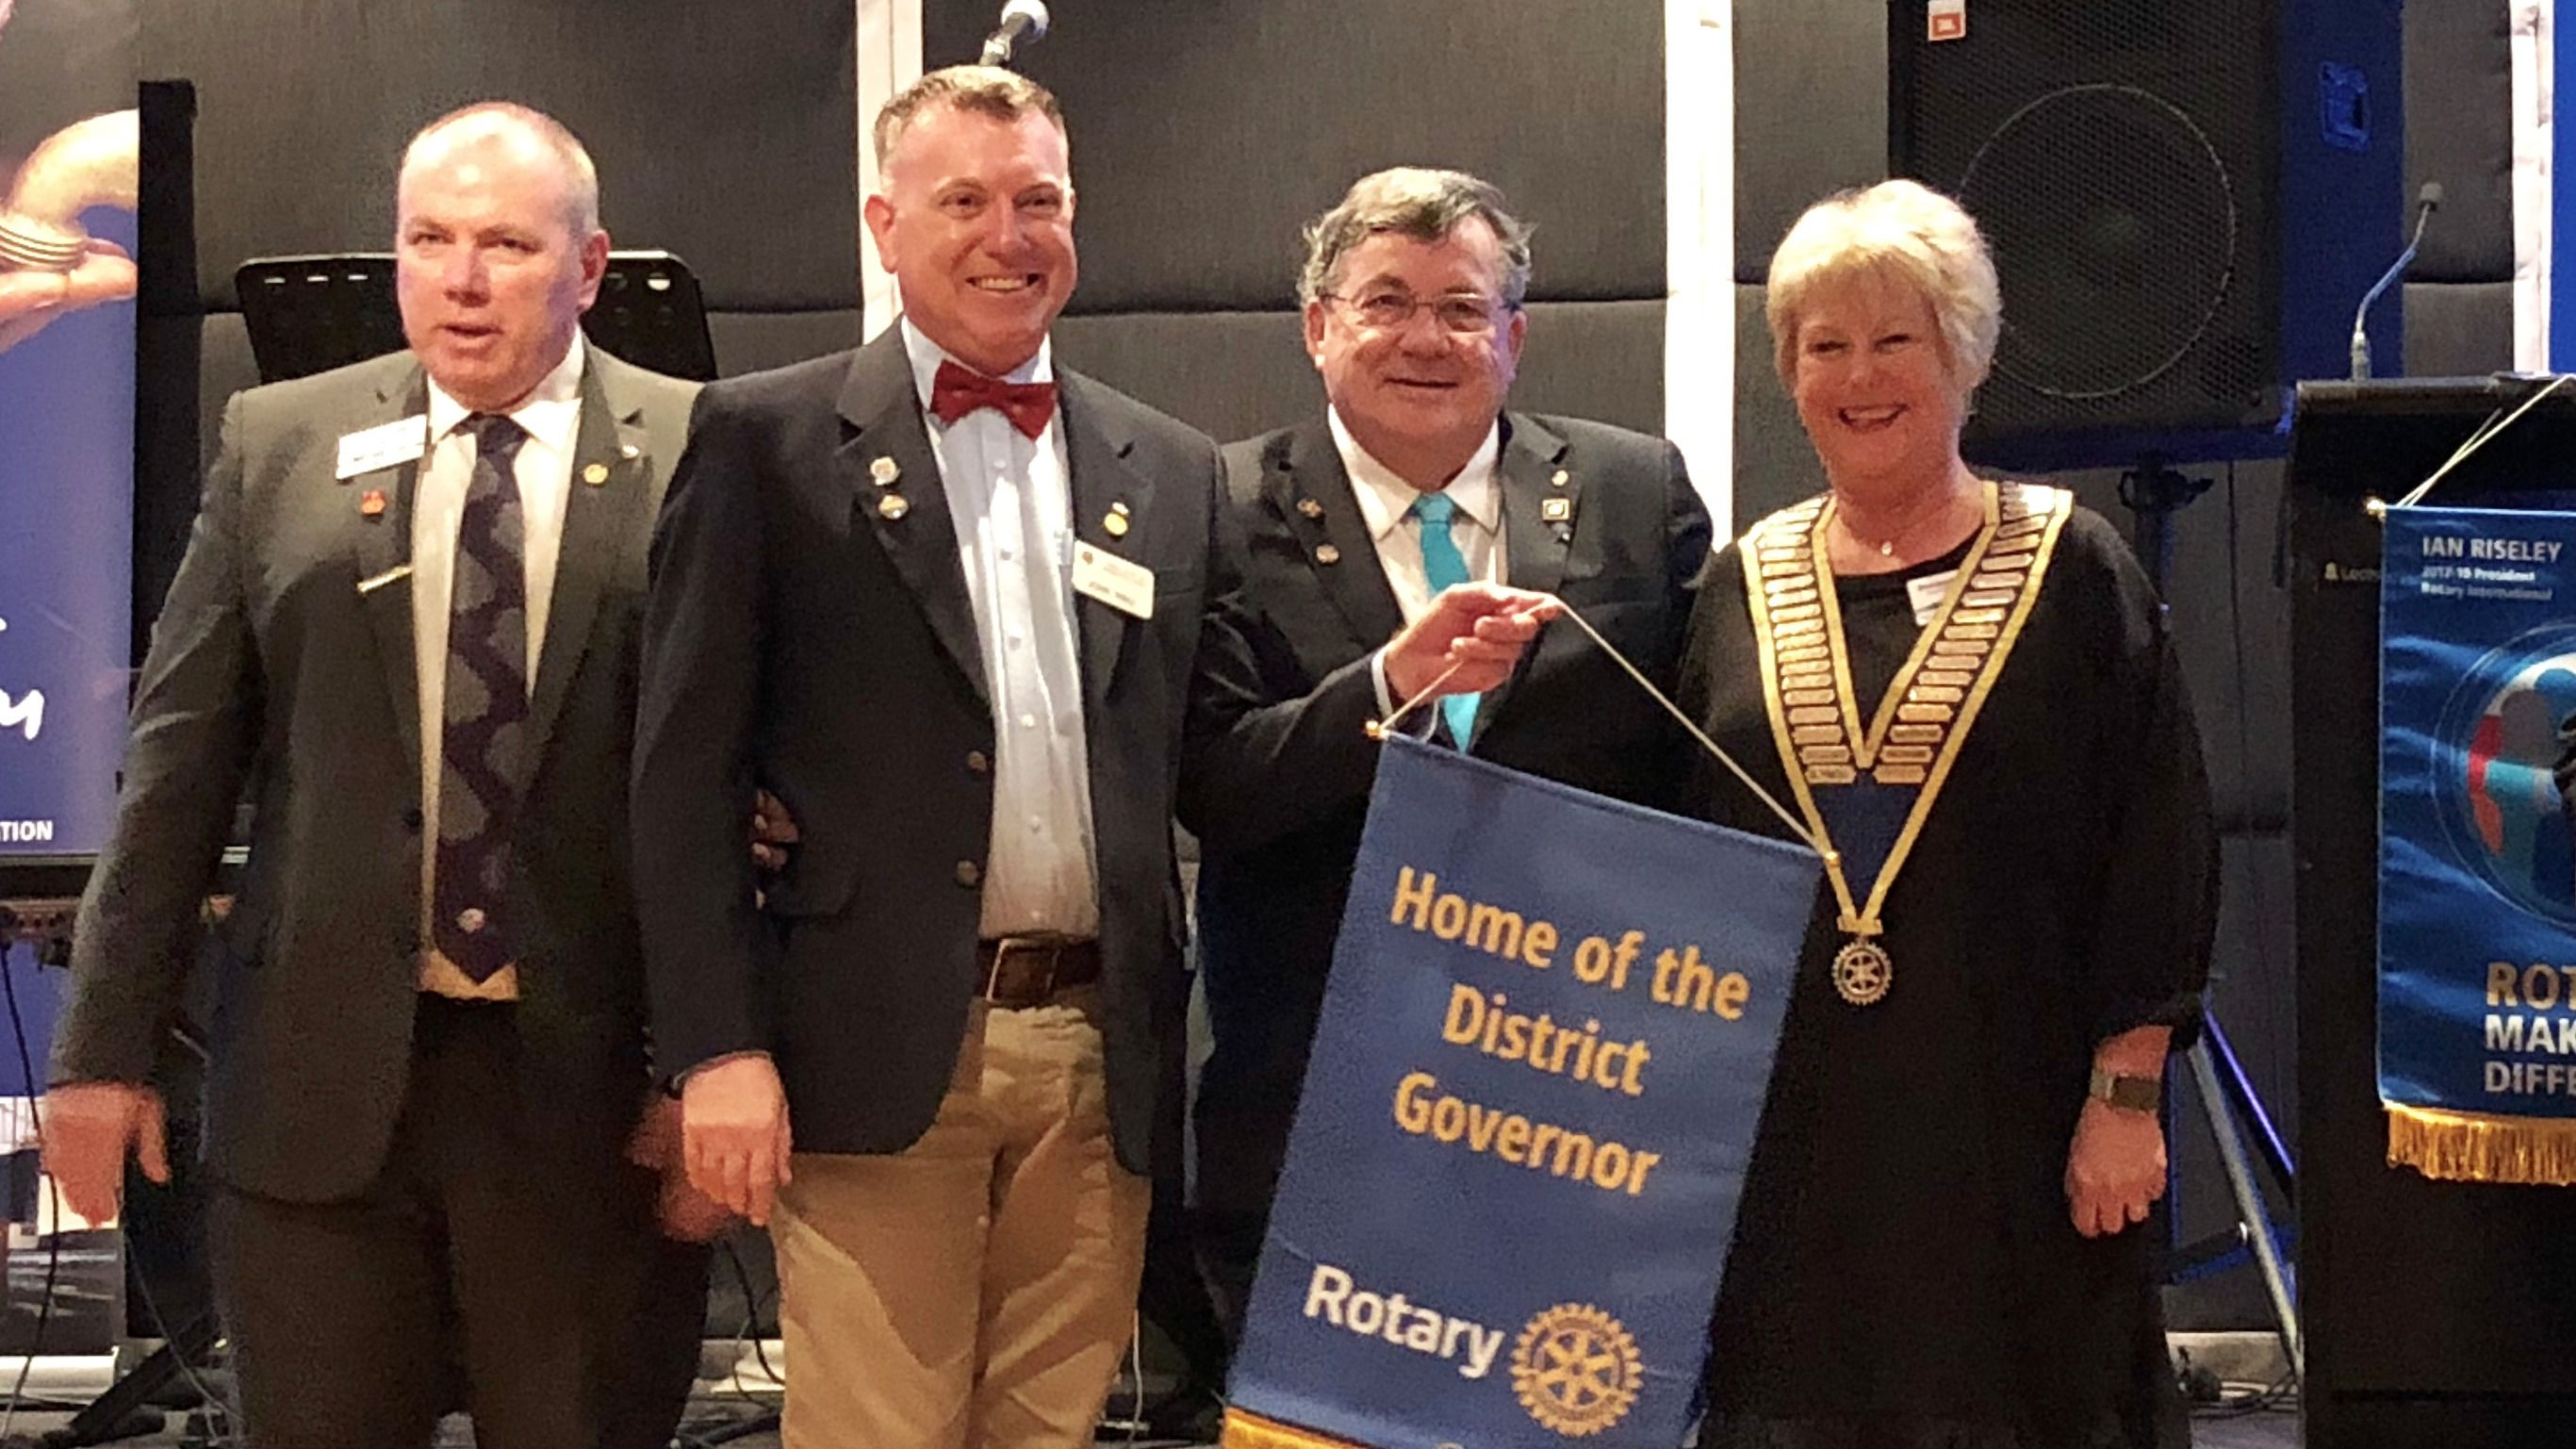 Rotary Club of Melbourne South